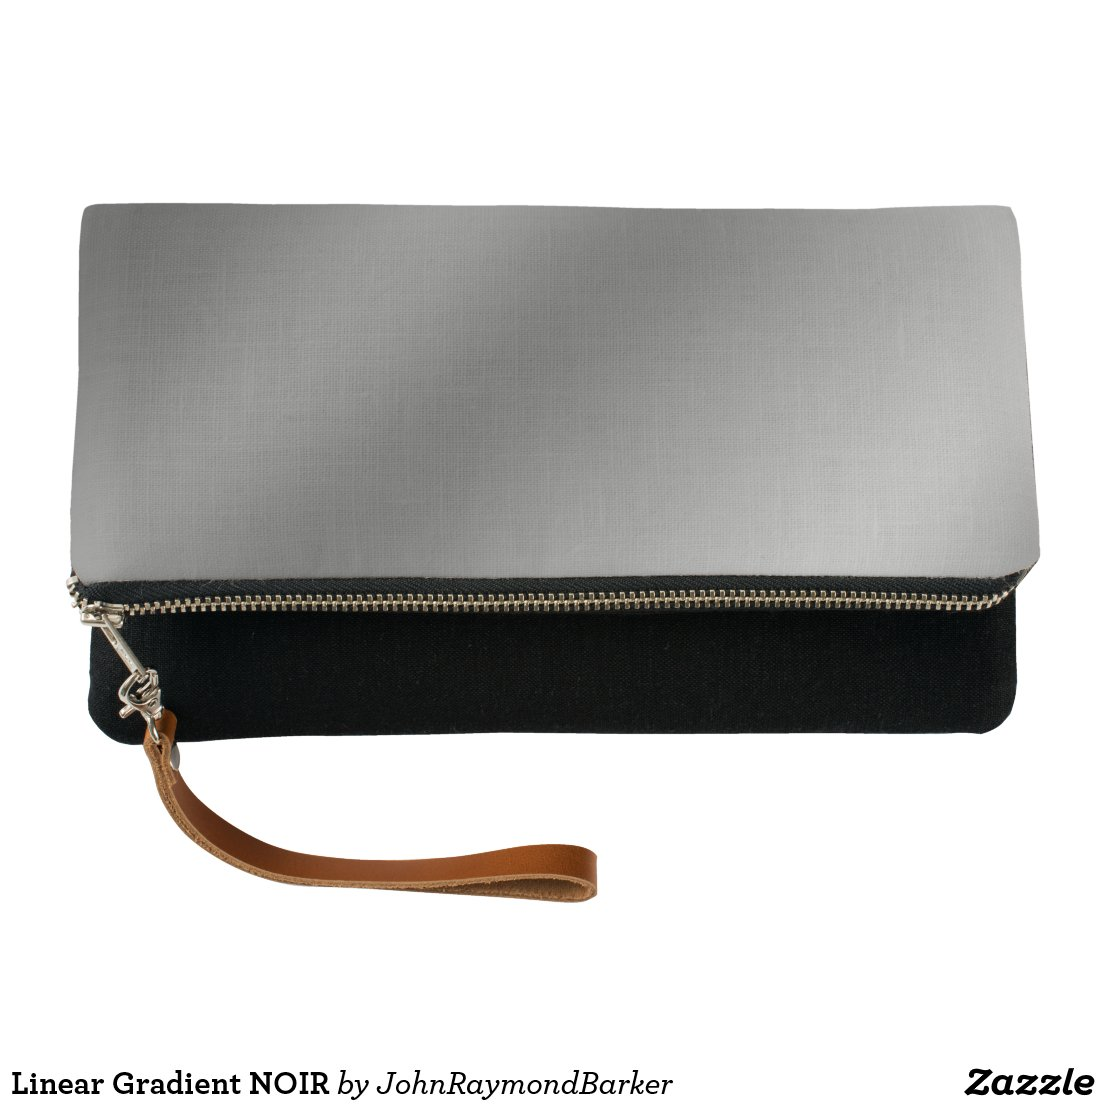 Linear Gradient NOIR Clutch